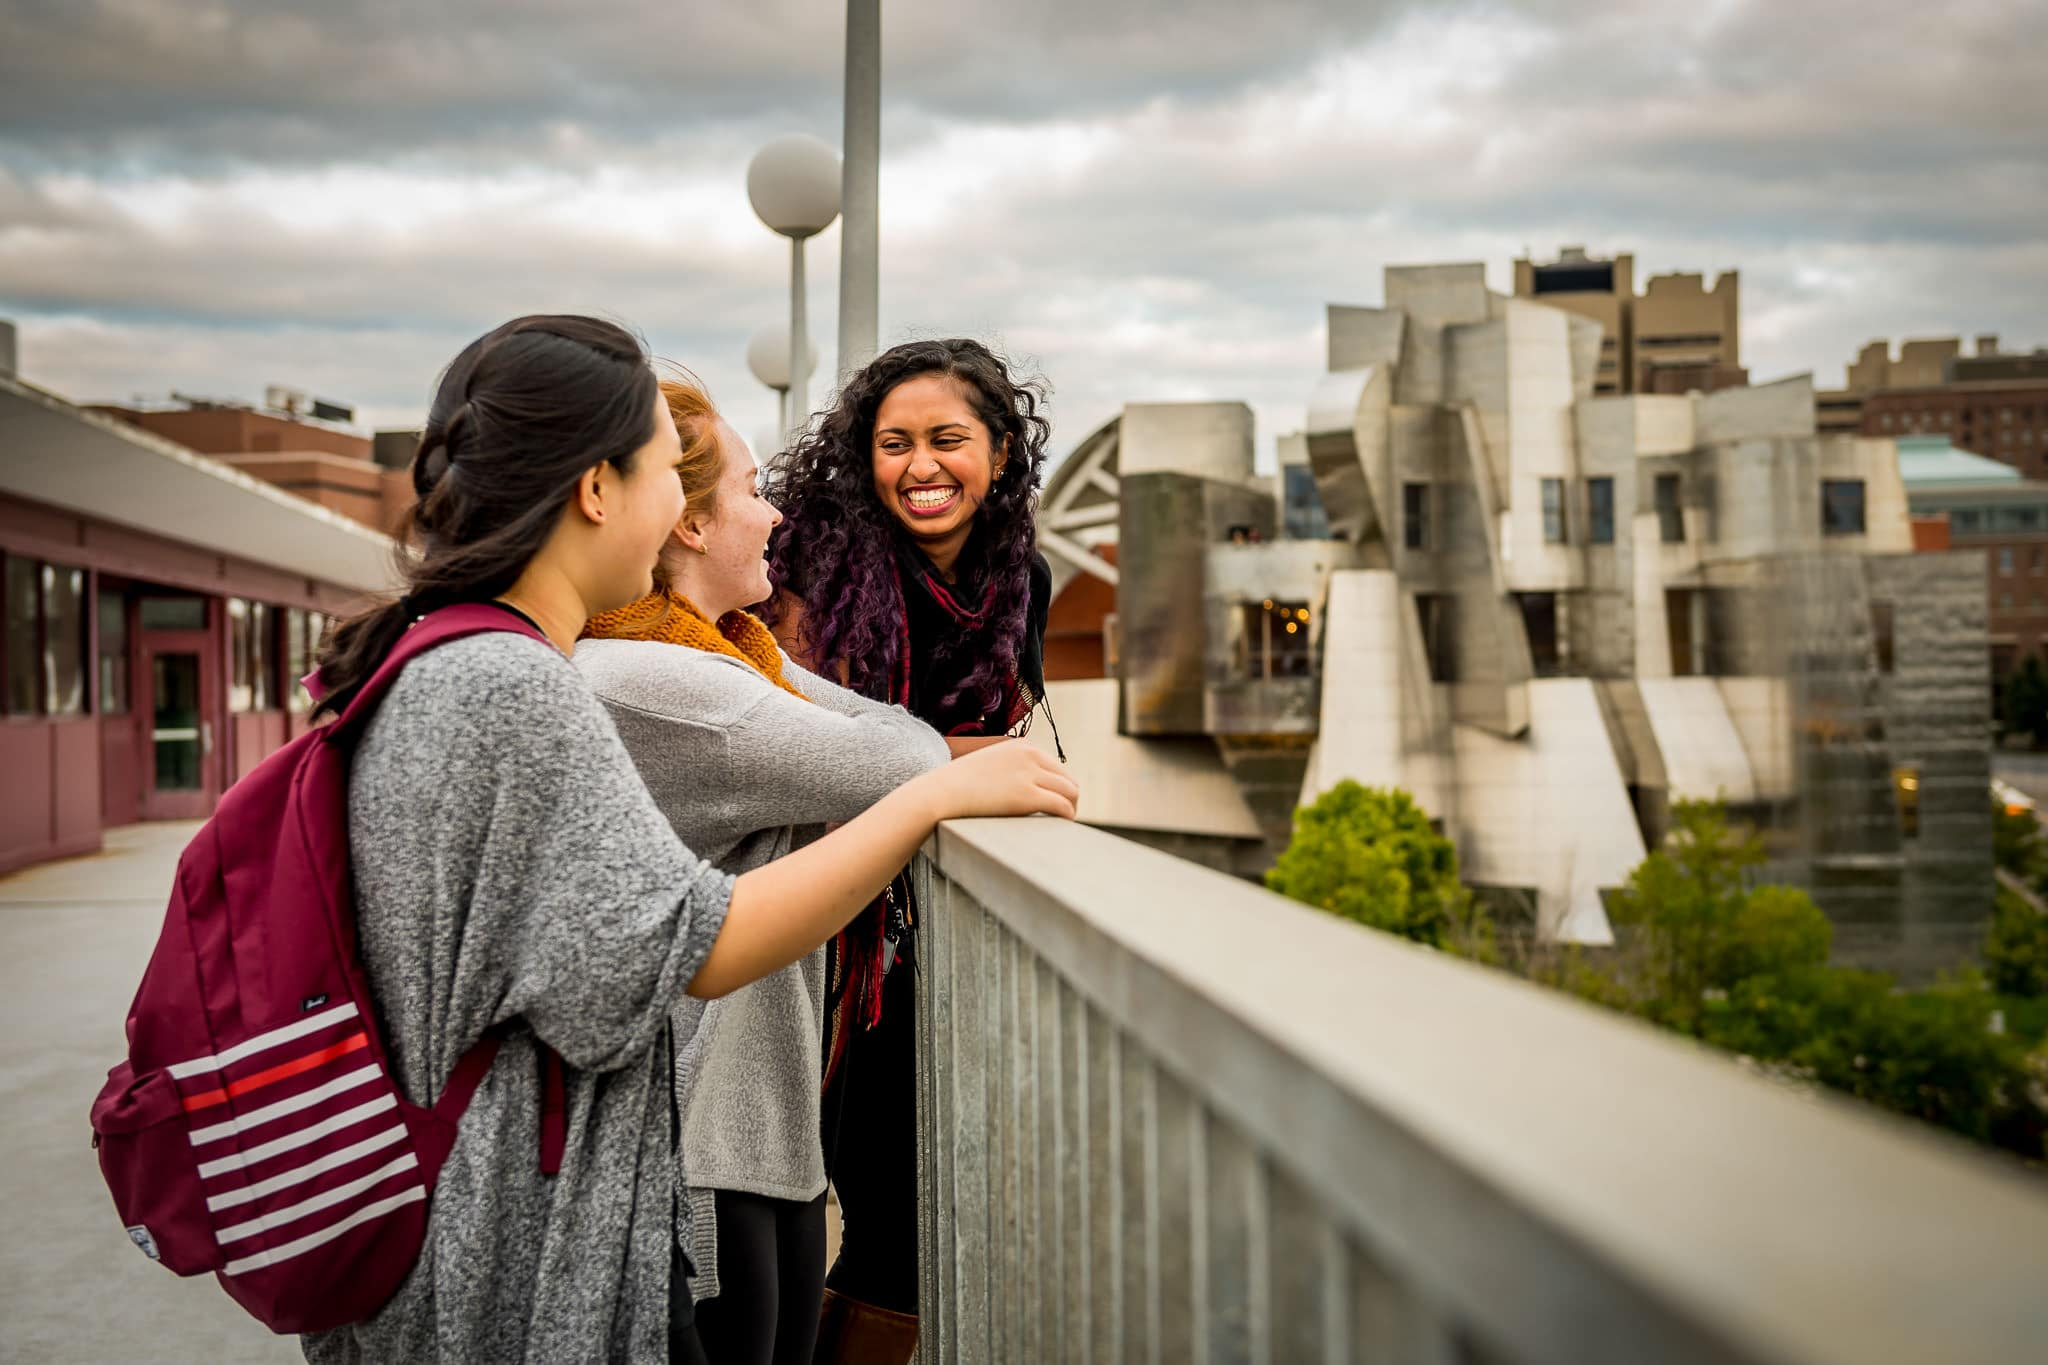 University of Minnesota students laughing with each other with the Weisman Art Museum in the background